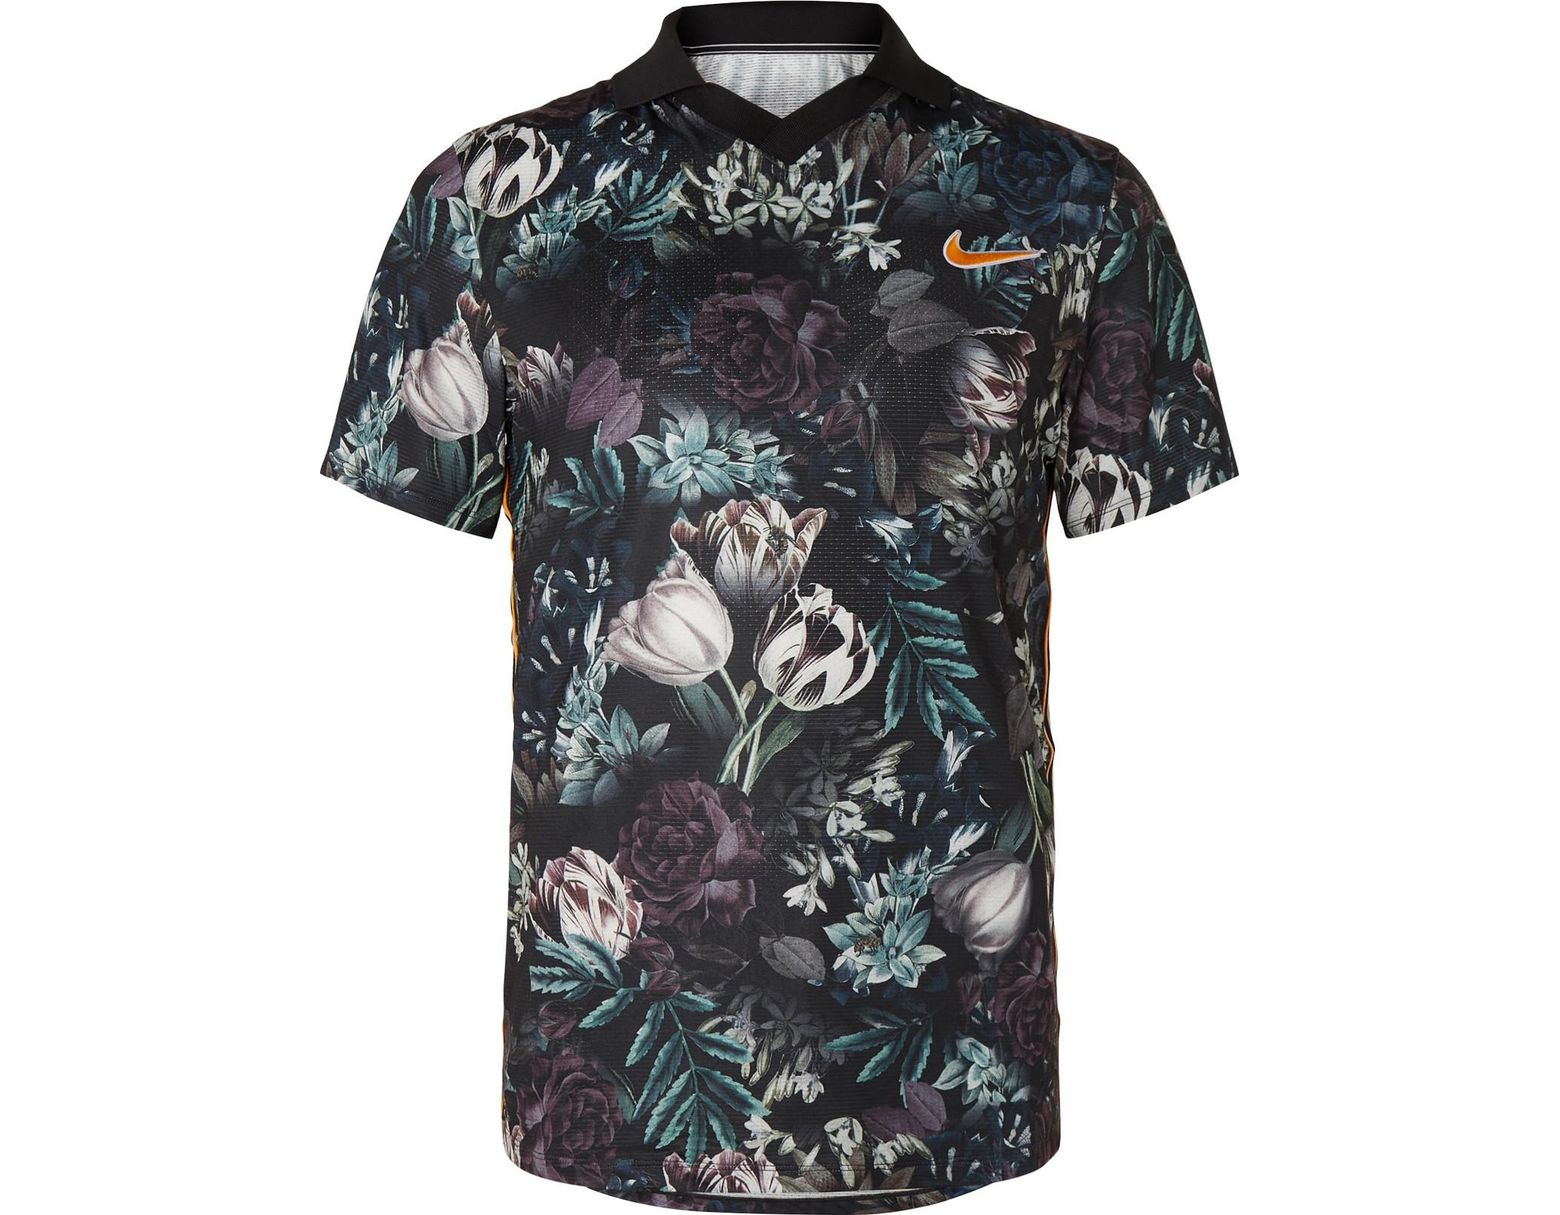 b58cd428187 Men's Black Nikecourt Slam Striped Floral-print Dri-fit Tennis Polo Shirt